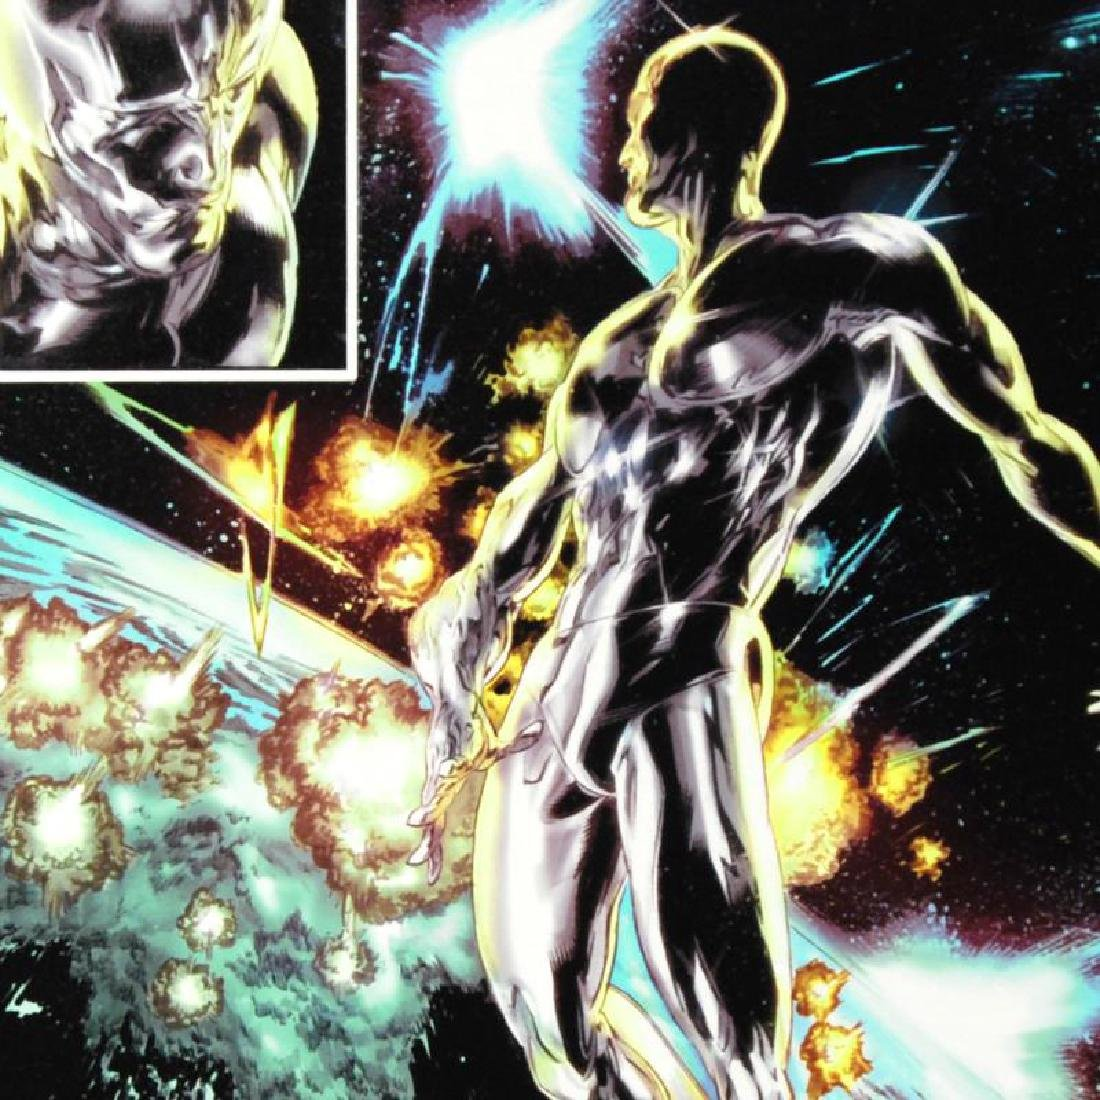 Silver Surfer: In Thy Name #4 - 2